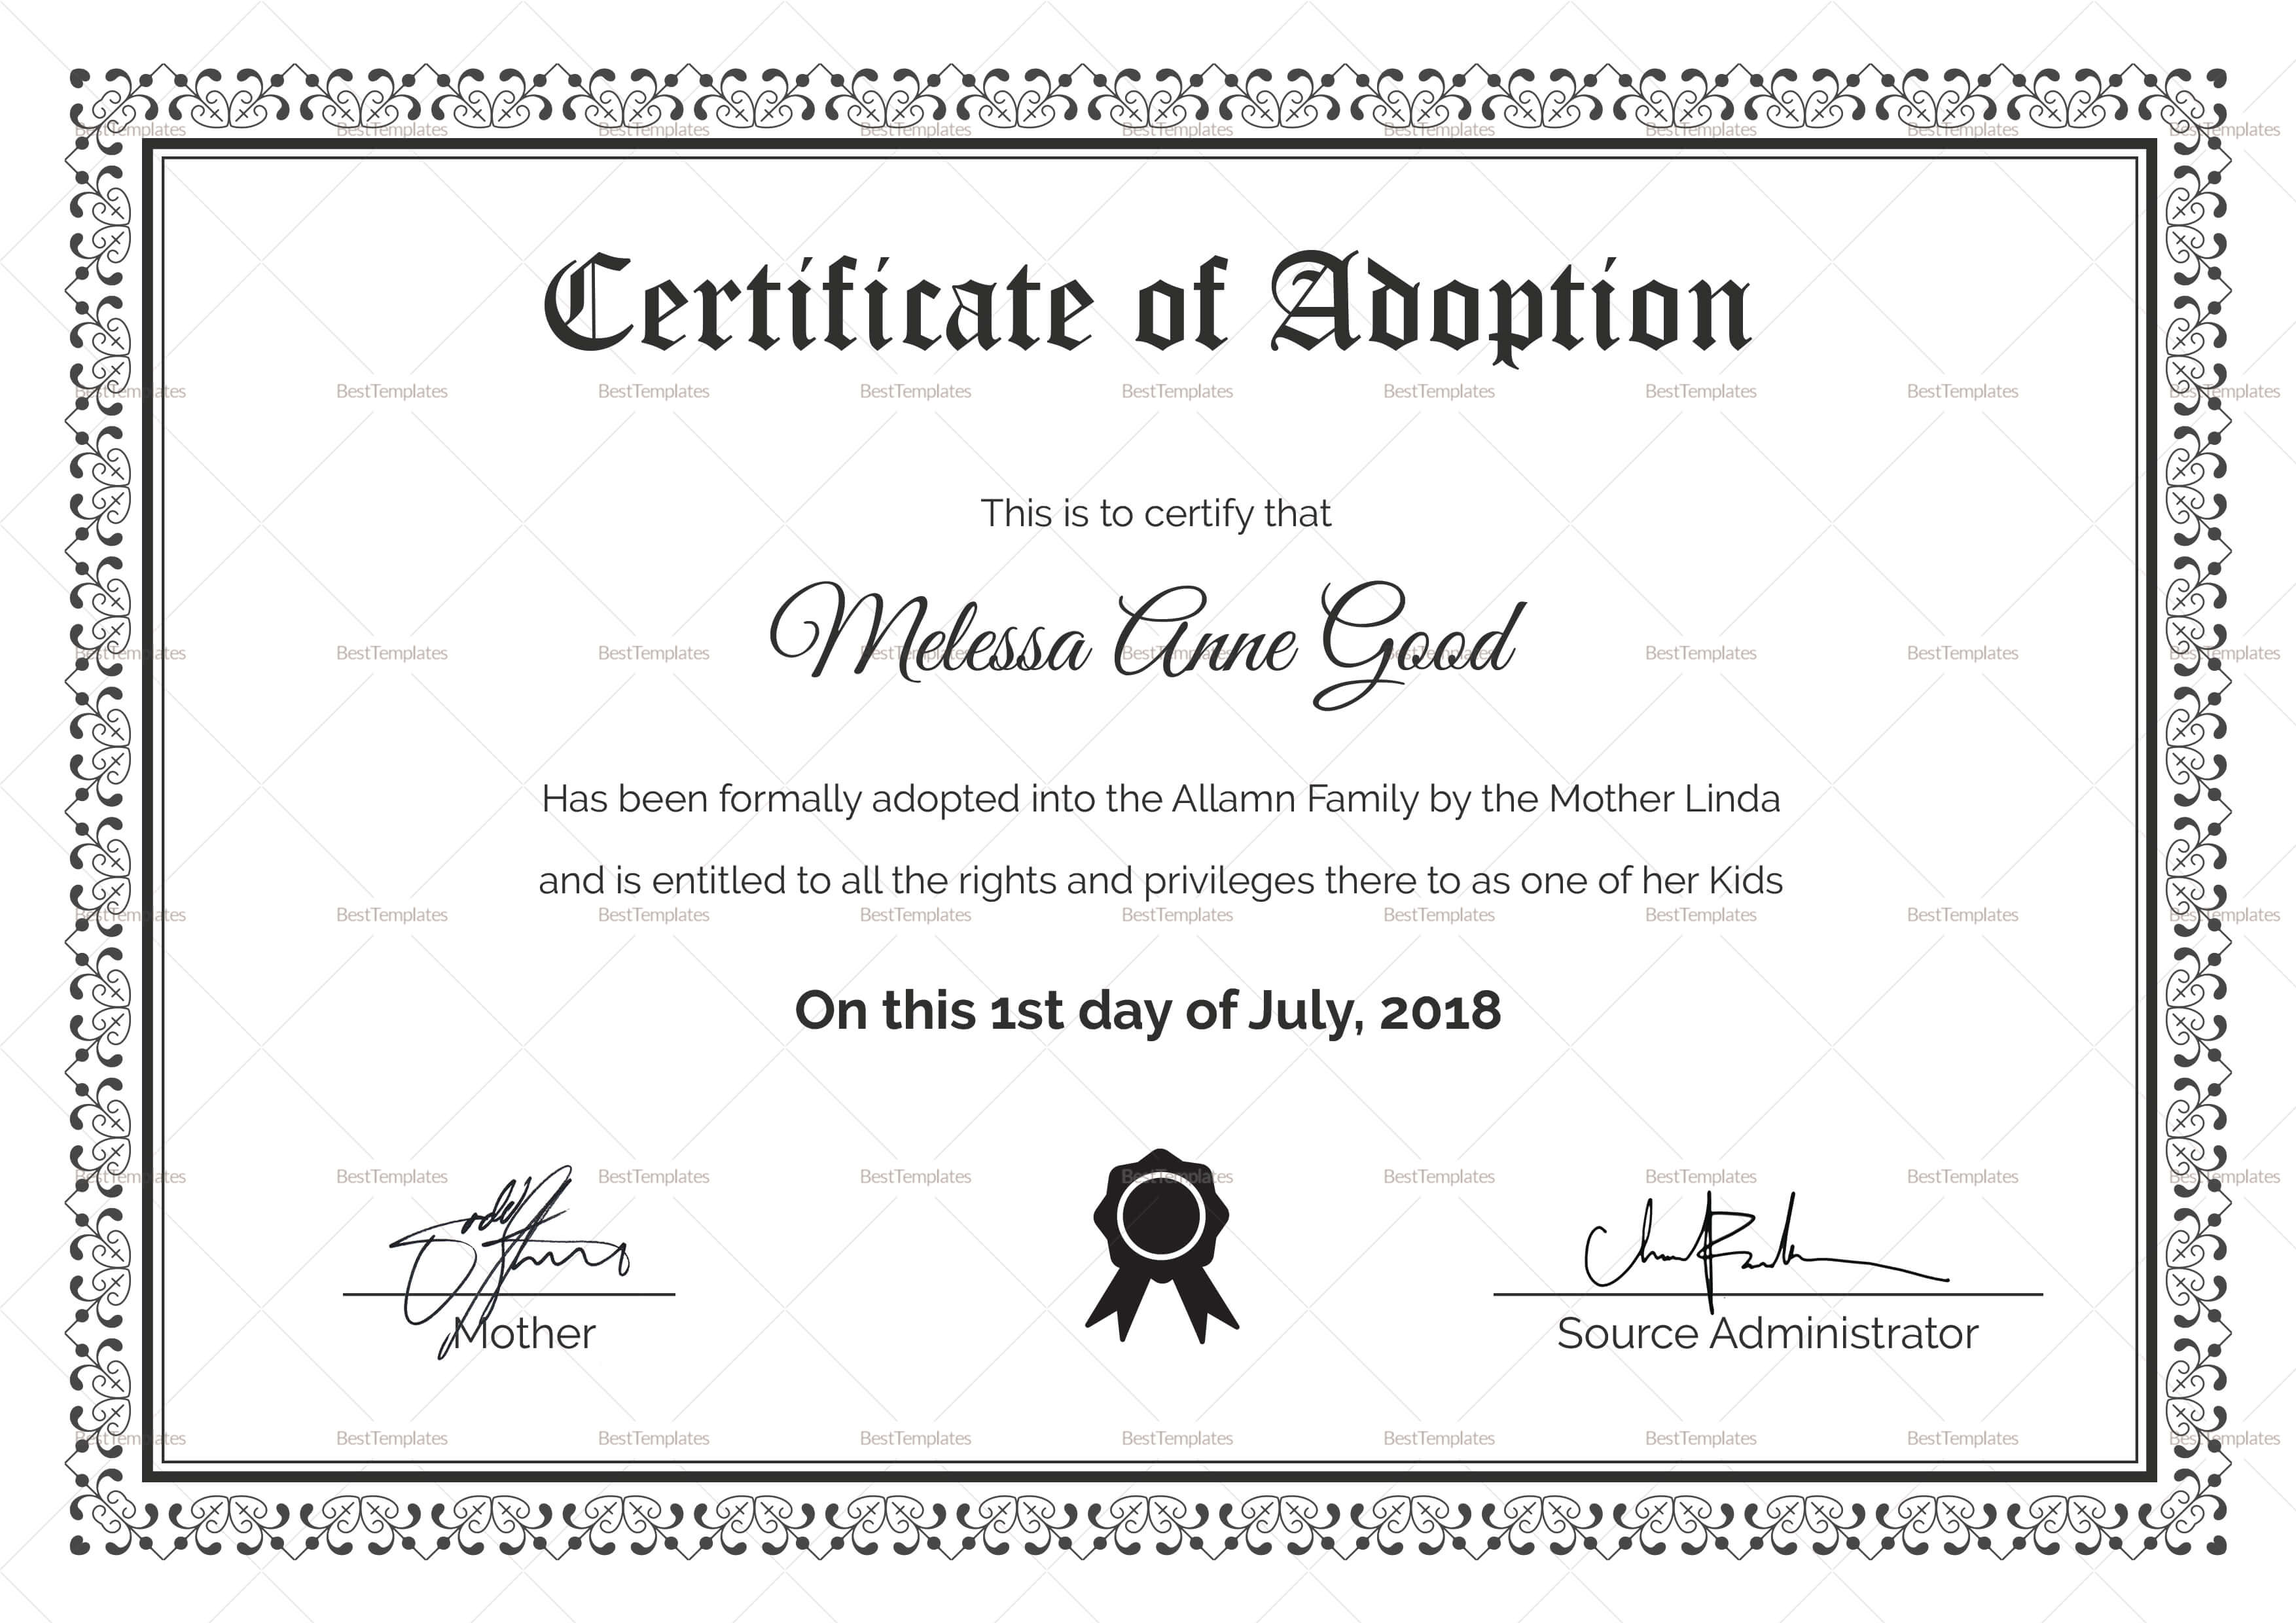 Adoption Certificate Design Template for Blank Adoption Certificate Template